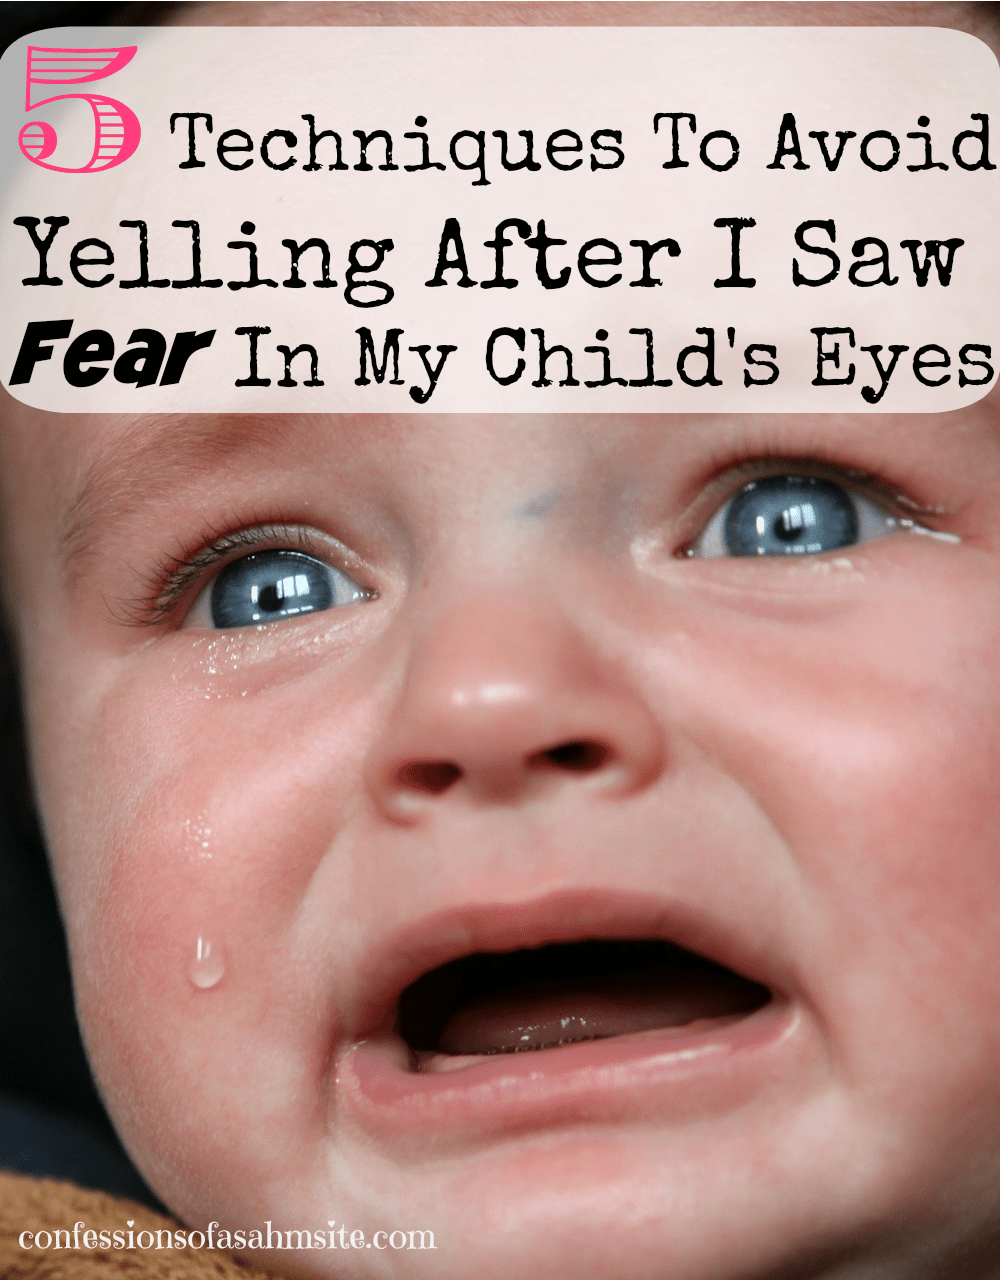 5 Techniques to Avoid Yelling after I saw fear in my child's eyes. Great techniques provided in this article. I loved tip number 3 as sometimes I forget to use it.